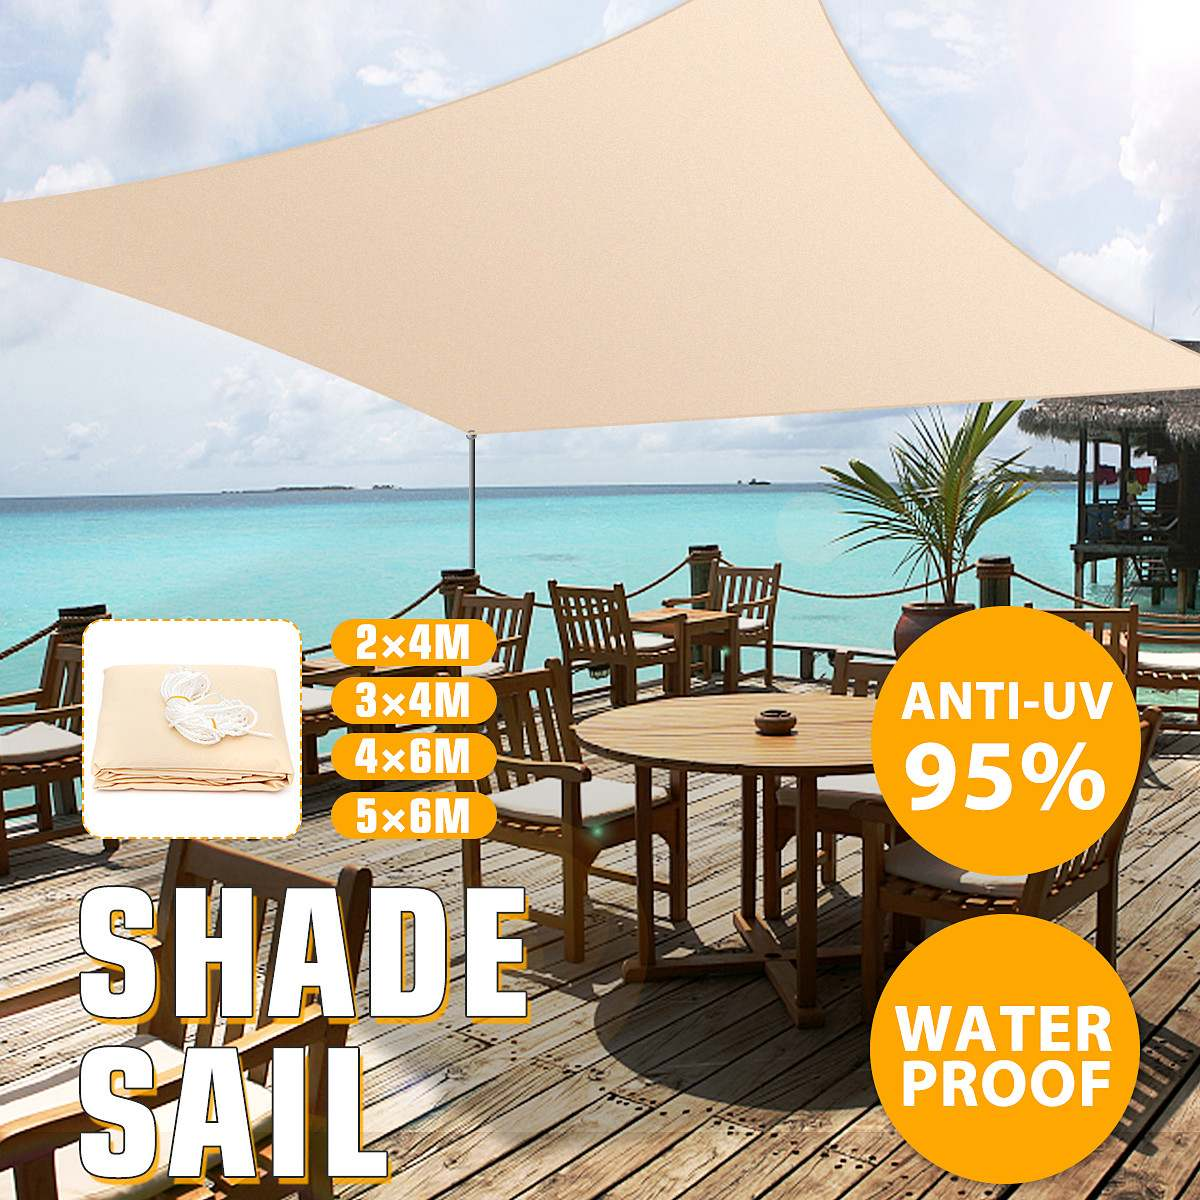 2x4 3x4 4x6 5x6m 4 Sizes Sun Shade Canopies Sails Outdoor Camping Hiking Yard Garden Shelters